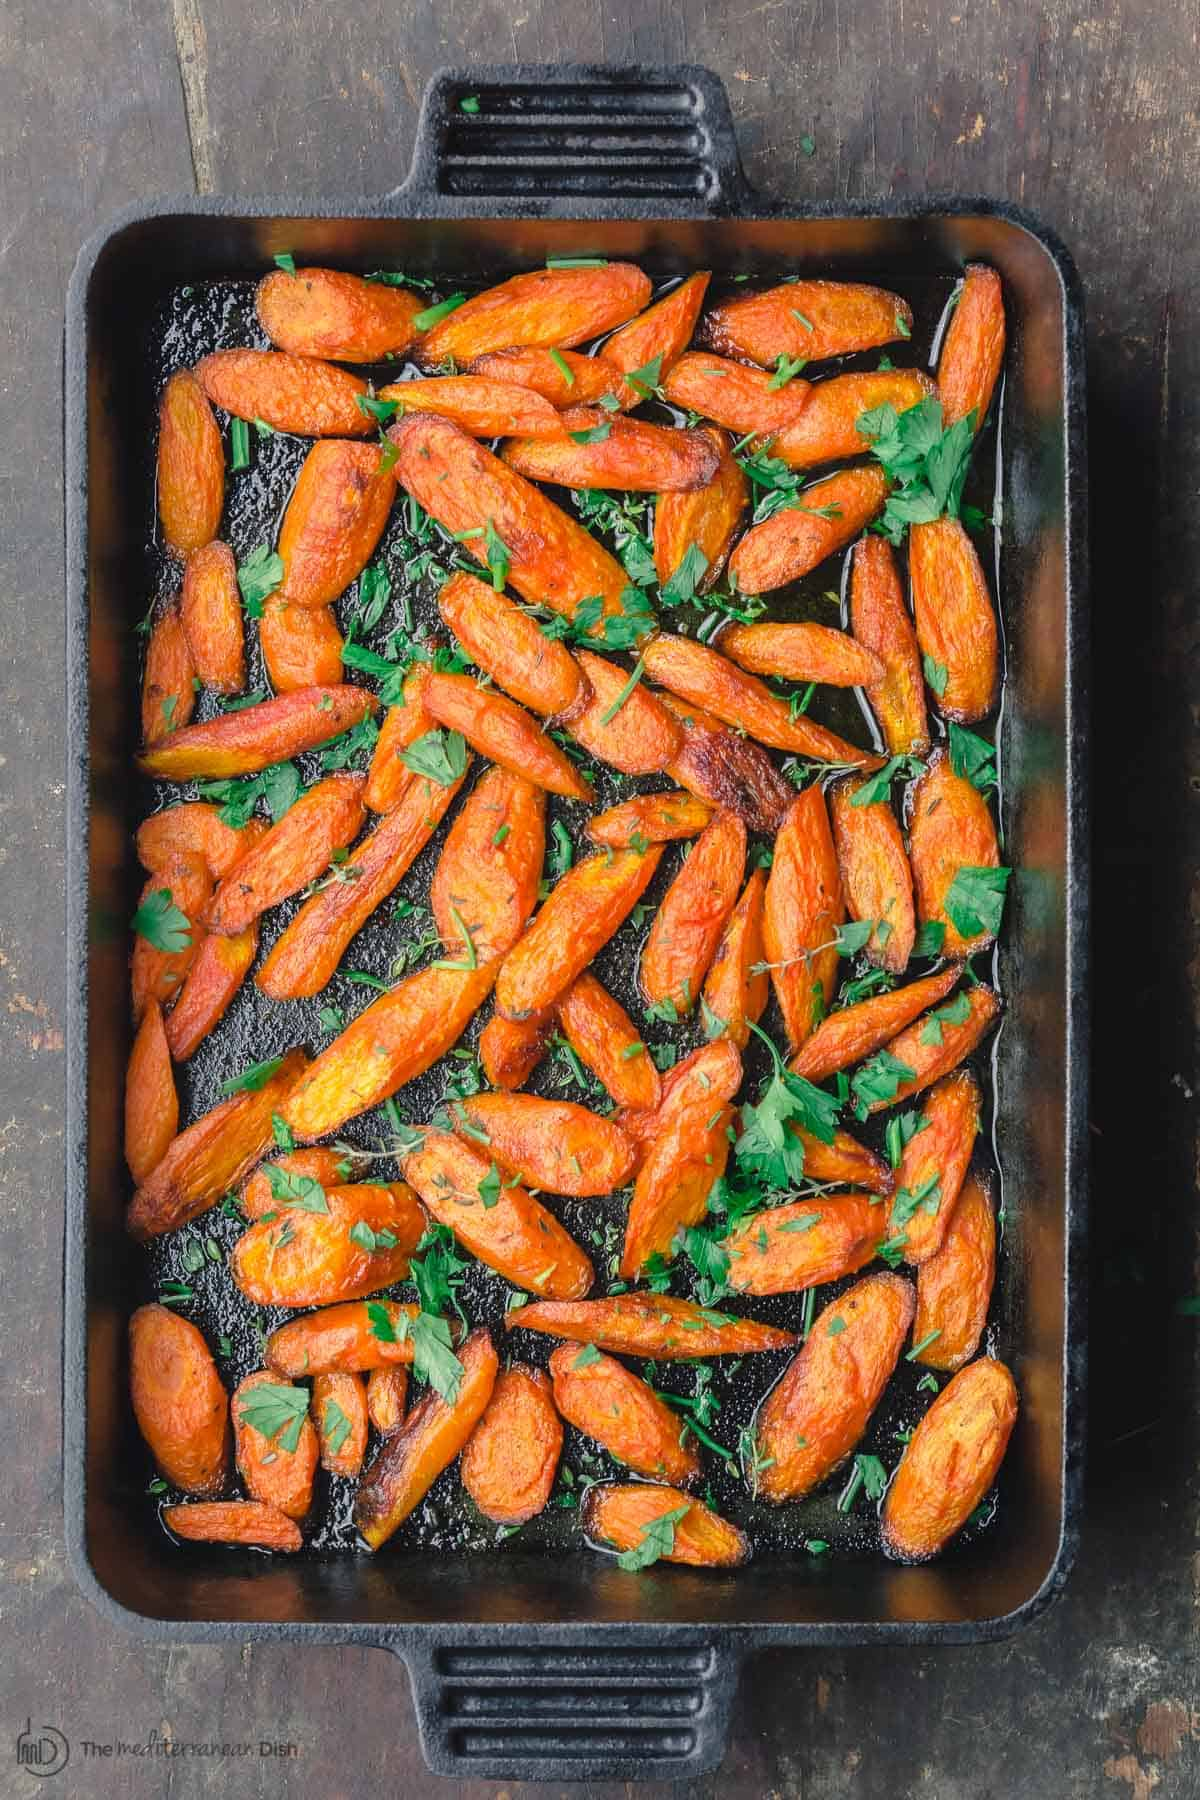 Roasted carrots in large baking pan